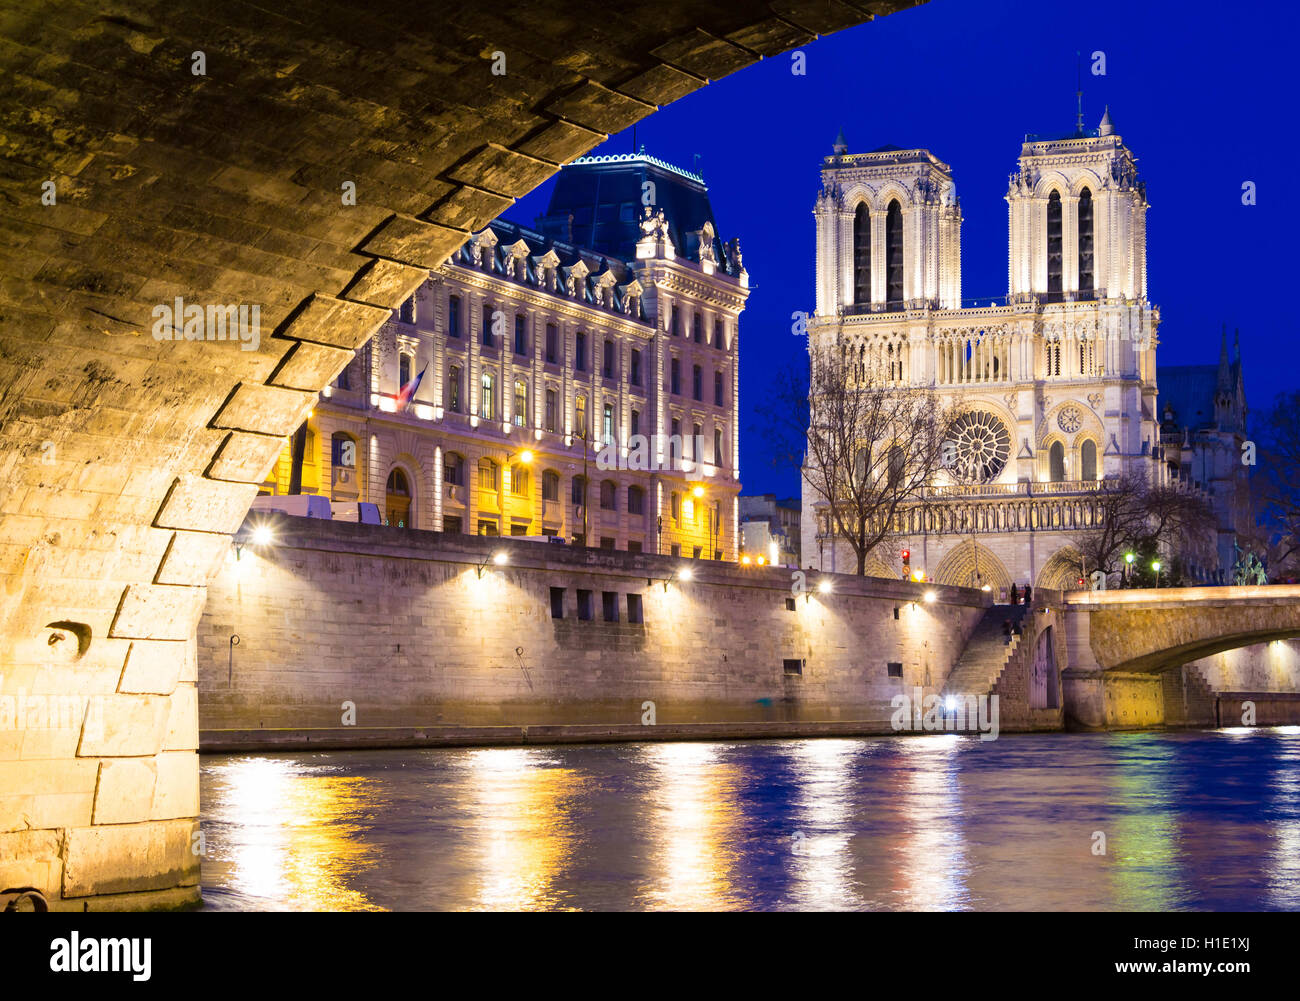 The Catholic Notre Dame cathedral, Paris, France. - Stock Image